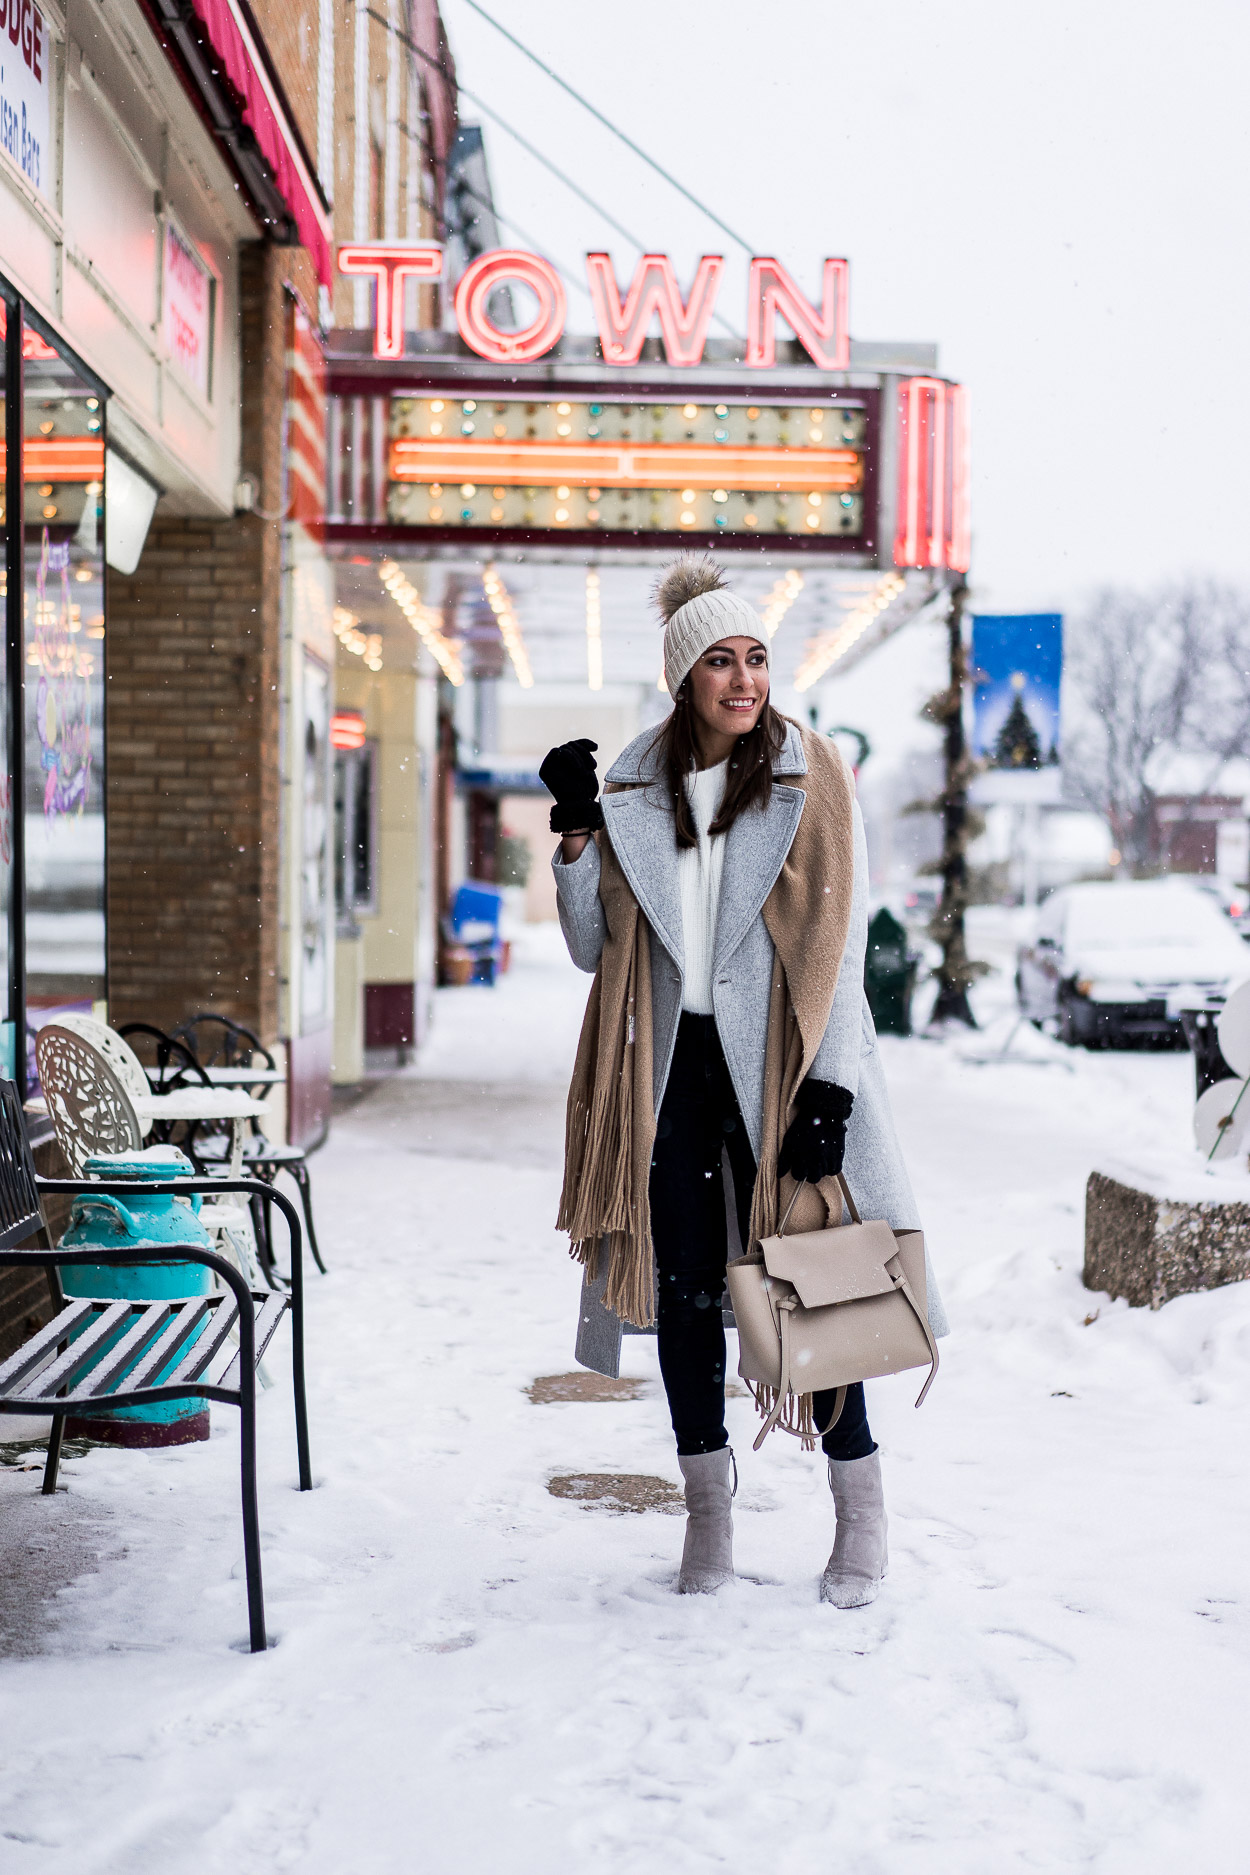 Winter date night outfits include a cozy sweater and chic coat like this one from Club Monaco styled by fashion blogger Amanda